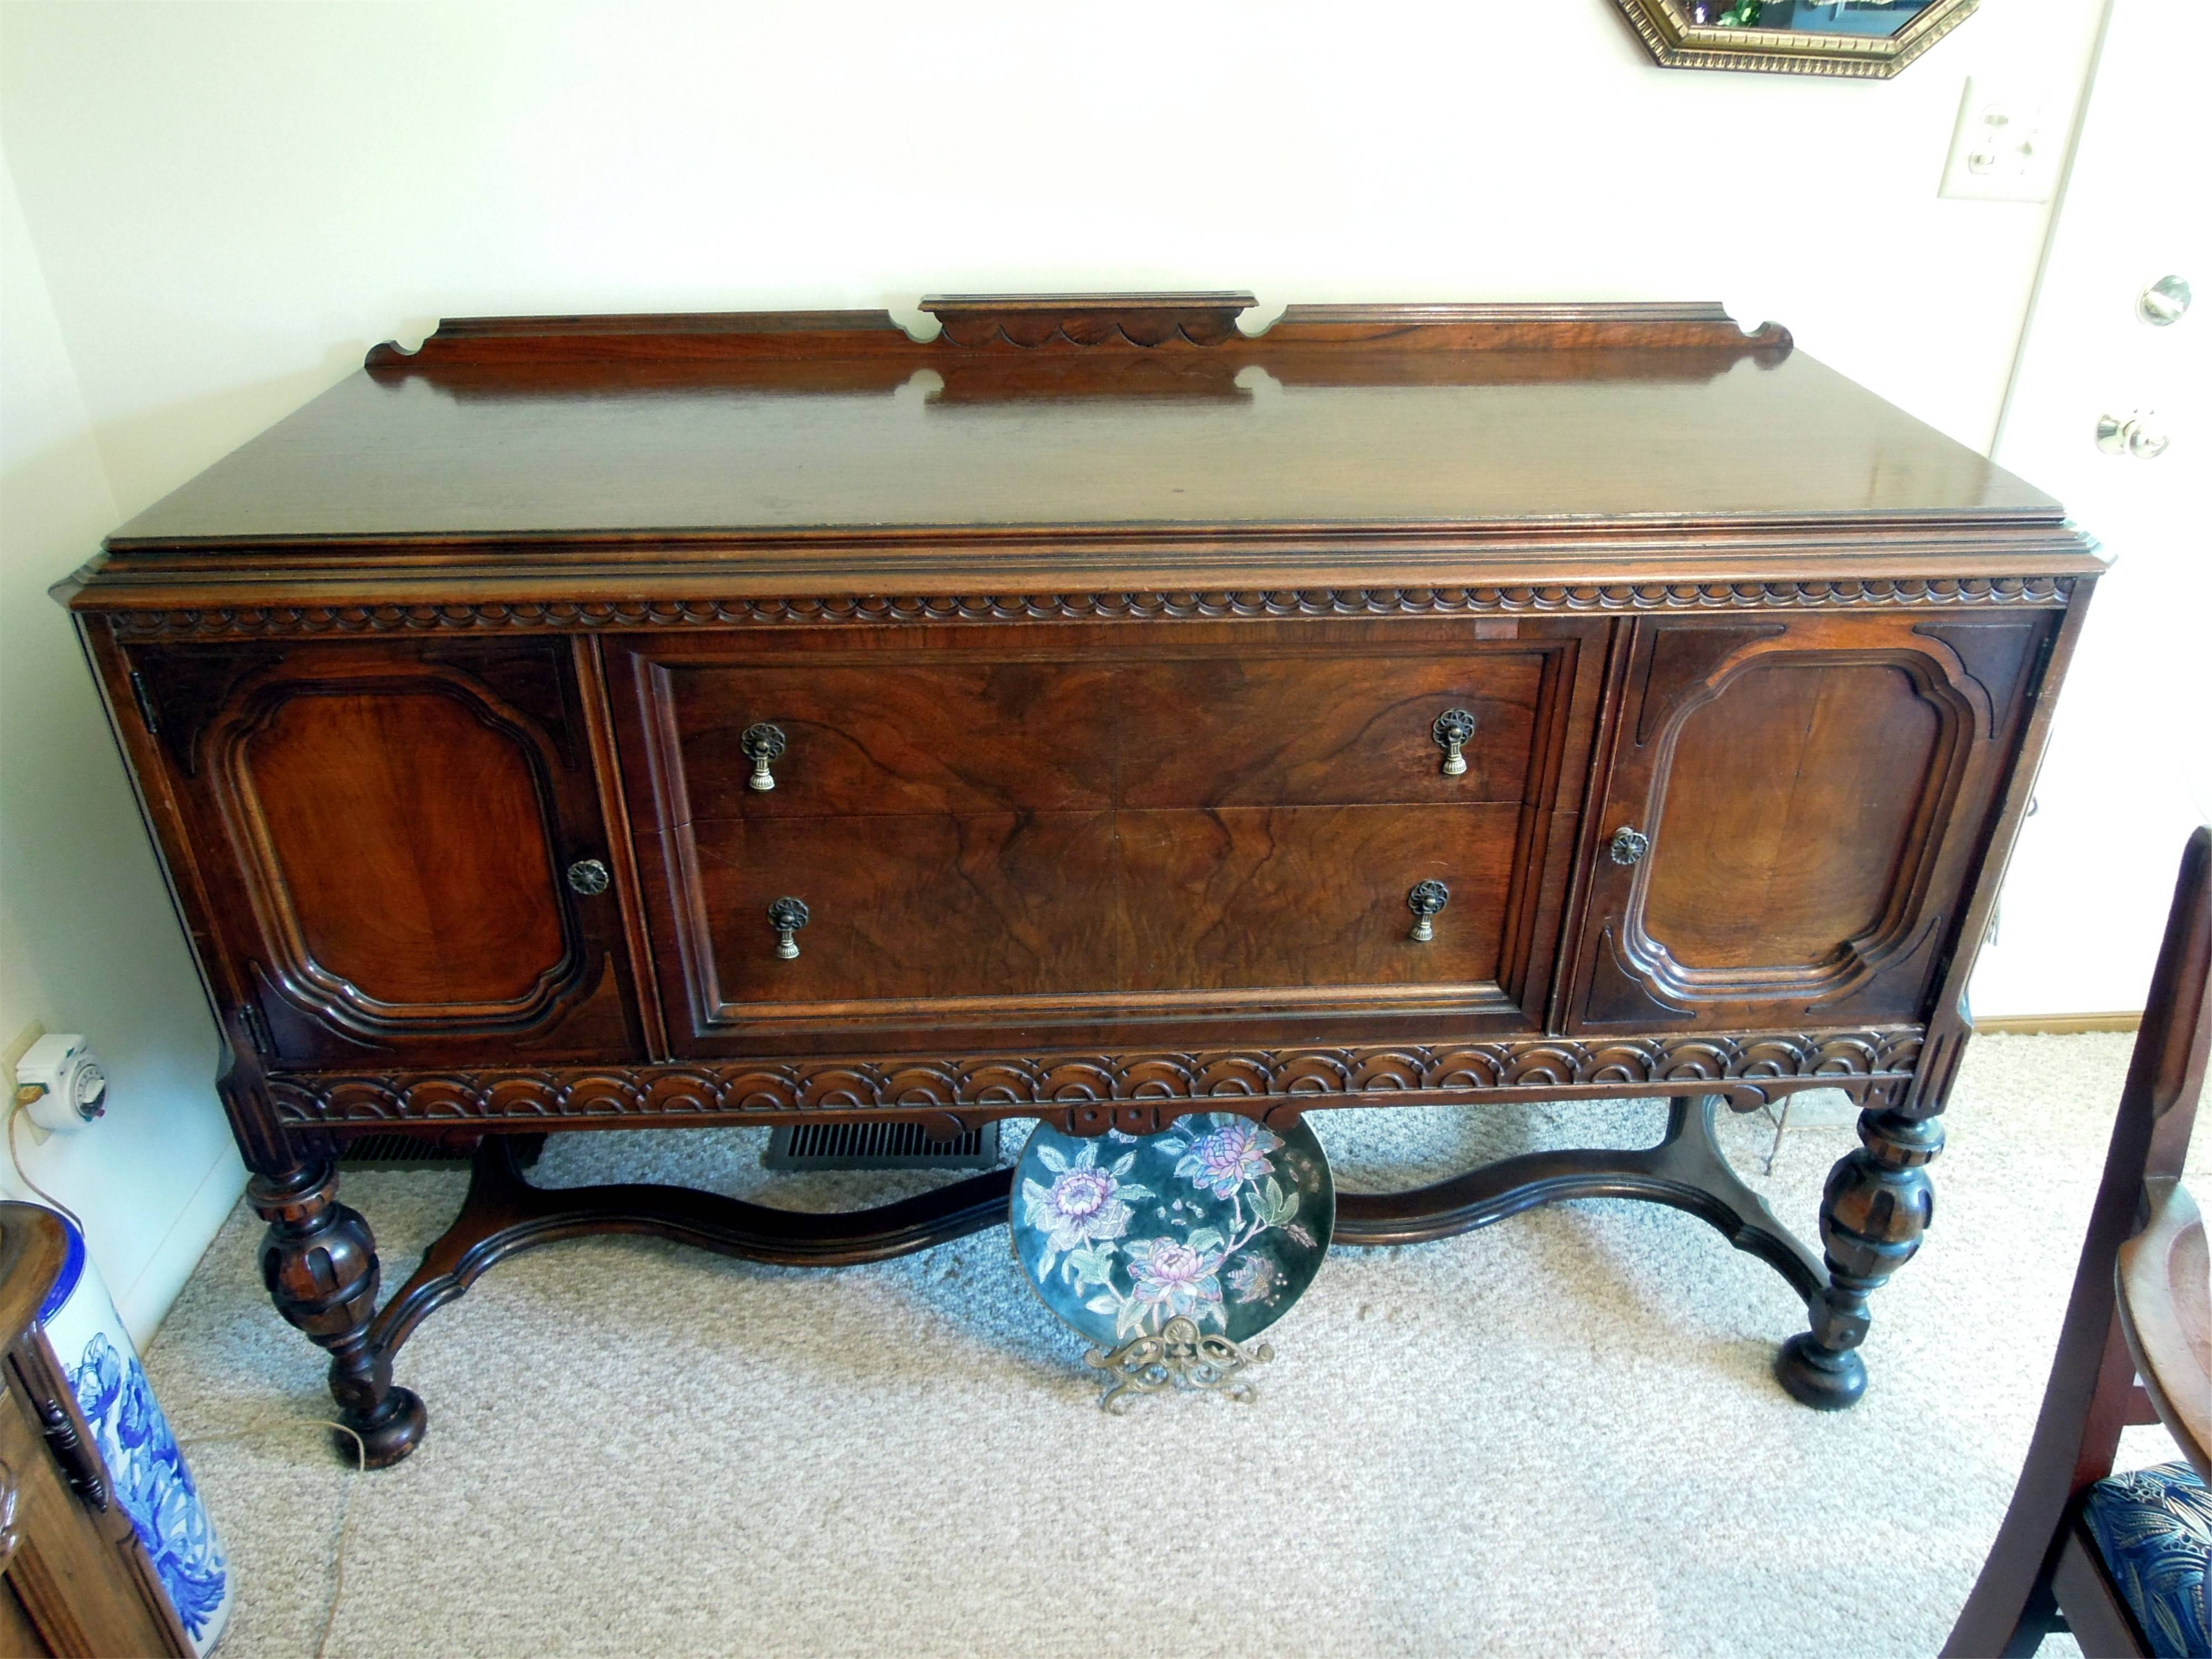 Antique Buffet Sideboard Elegant And Furniture Cozy Fabrica Carpet Pertaining To 2017 Antique Buffet Sideboards (#3 of 15)